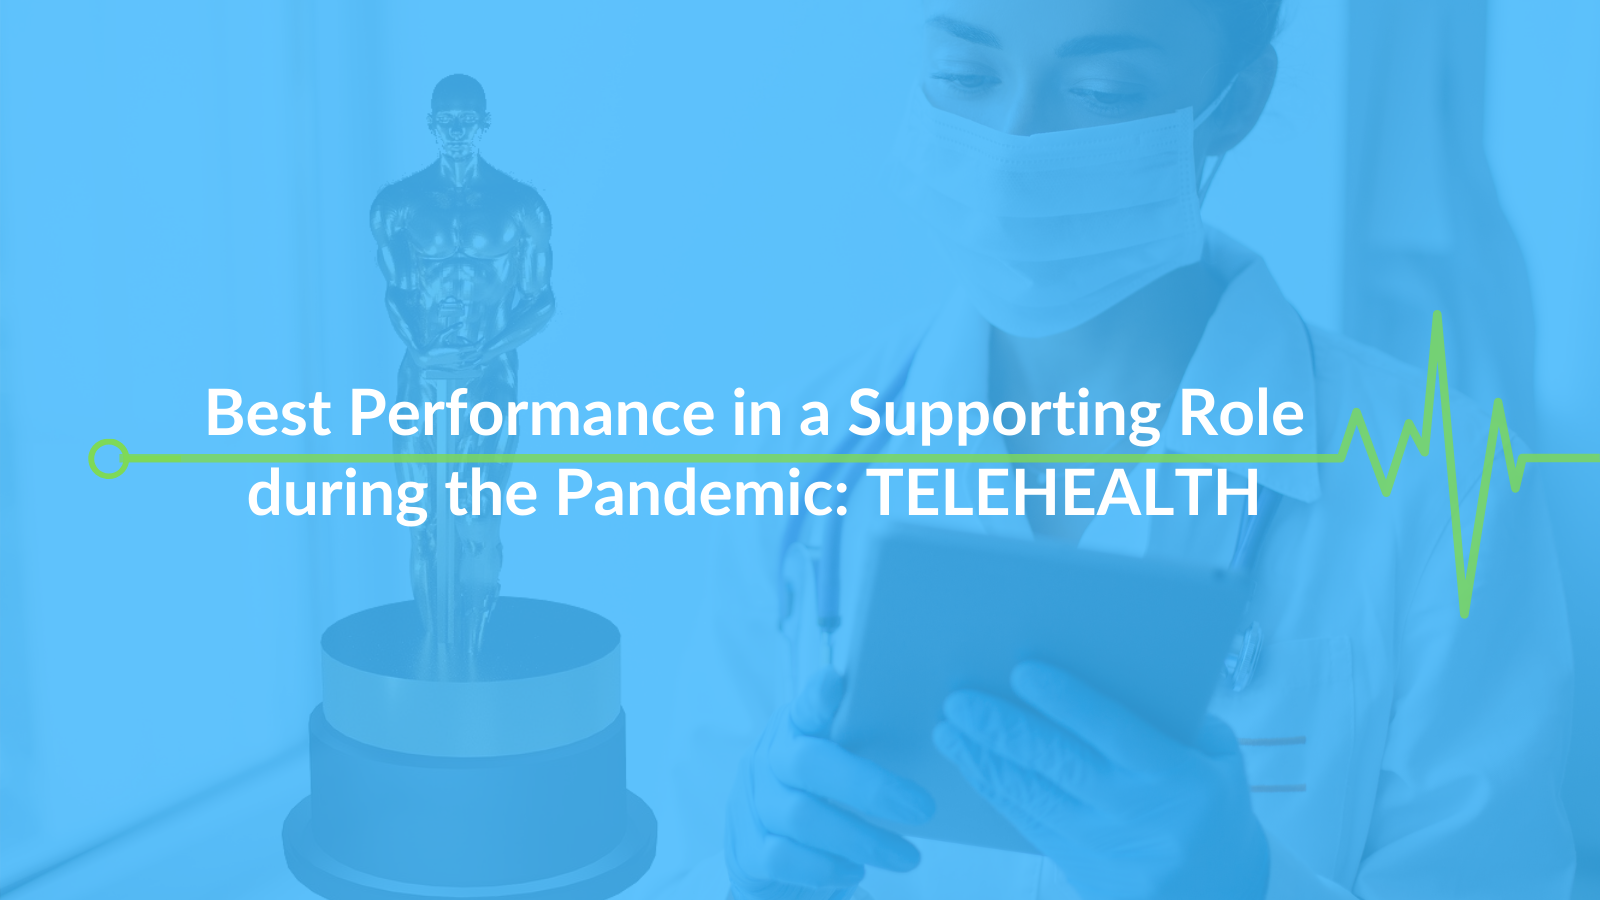 Best Performance in a Supporting Role During the Pandemic: Telehealth